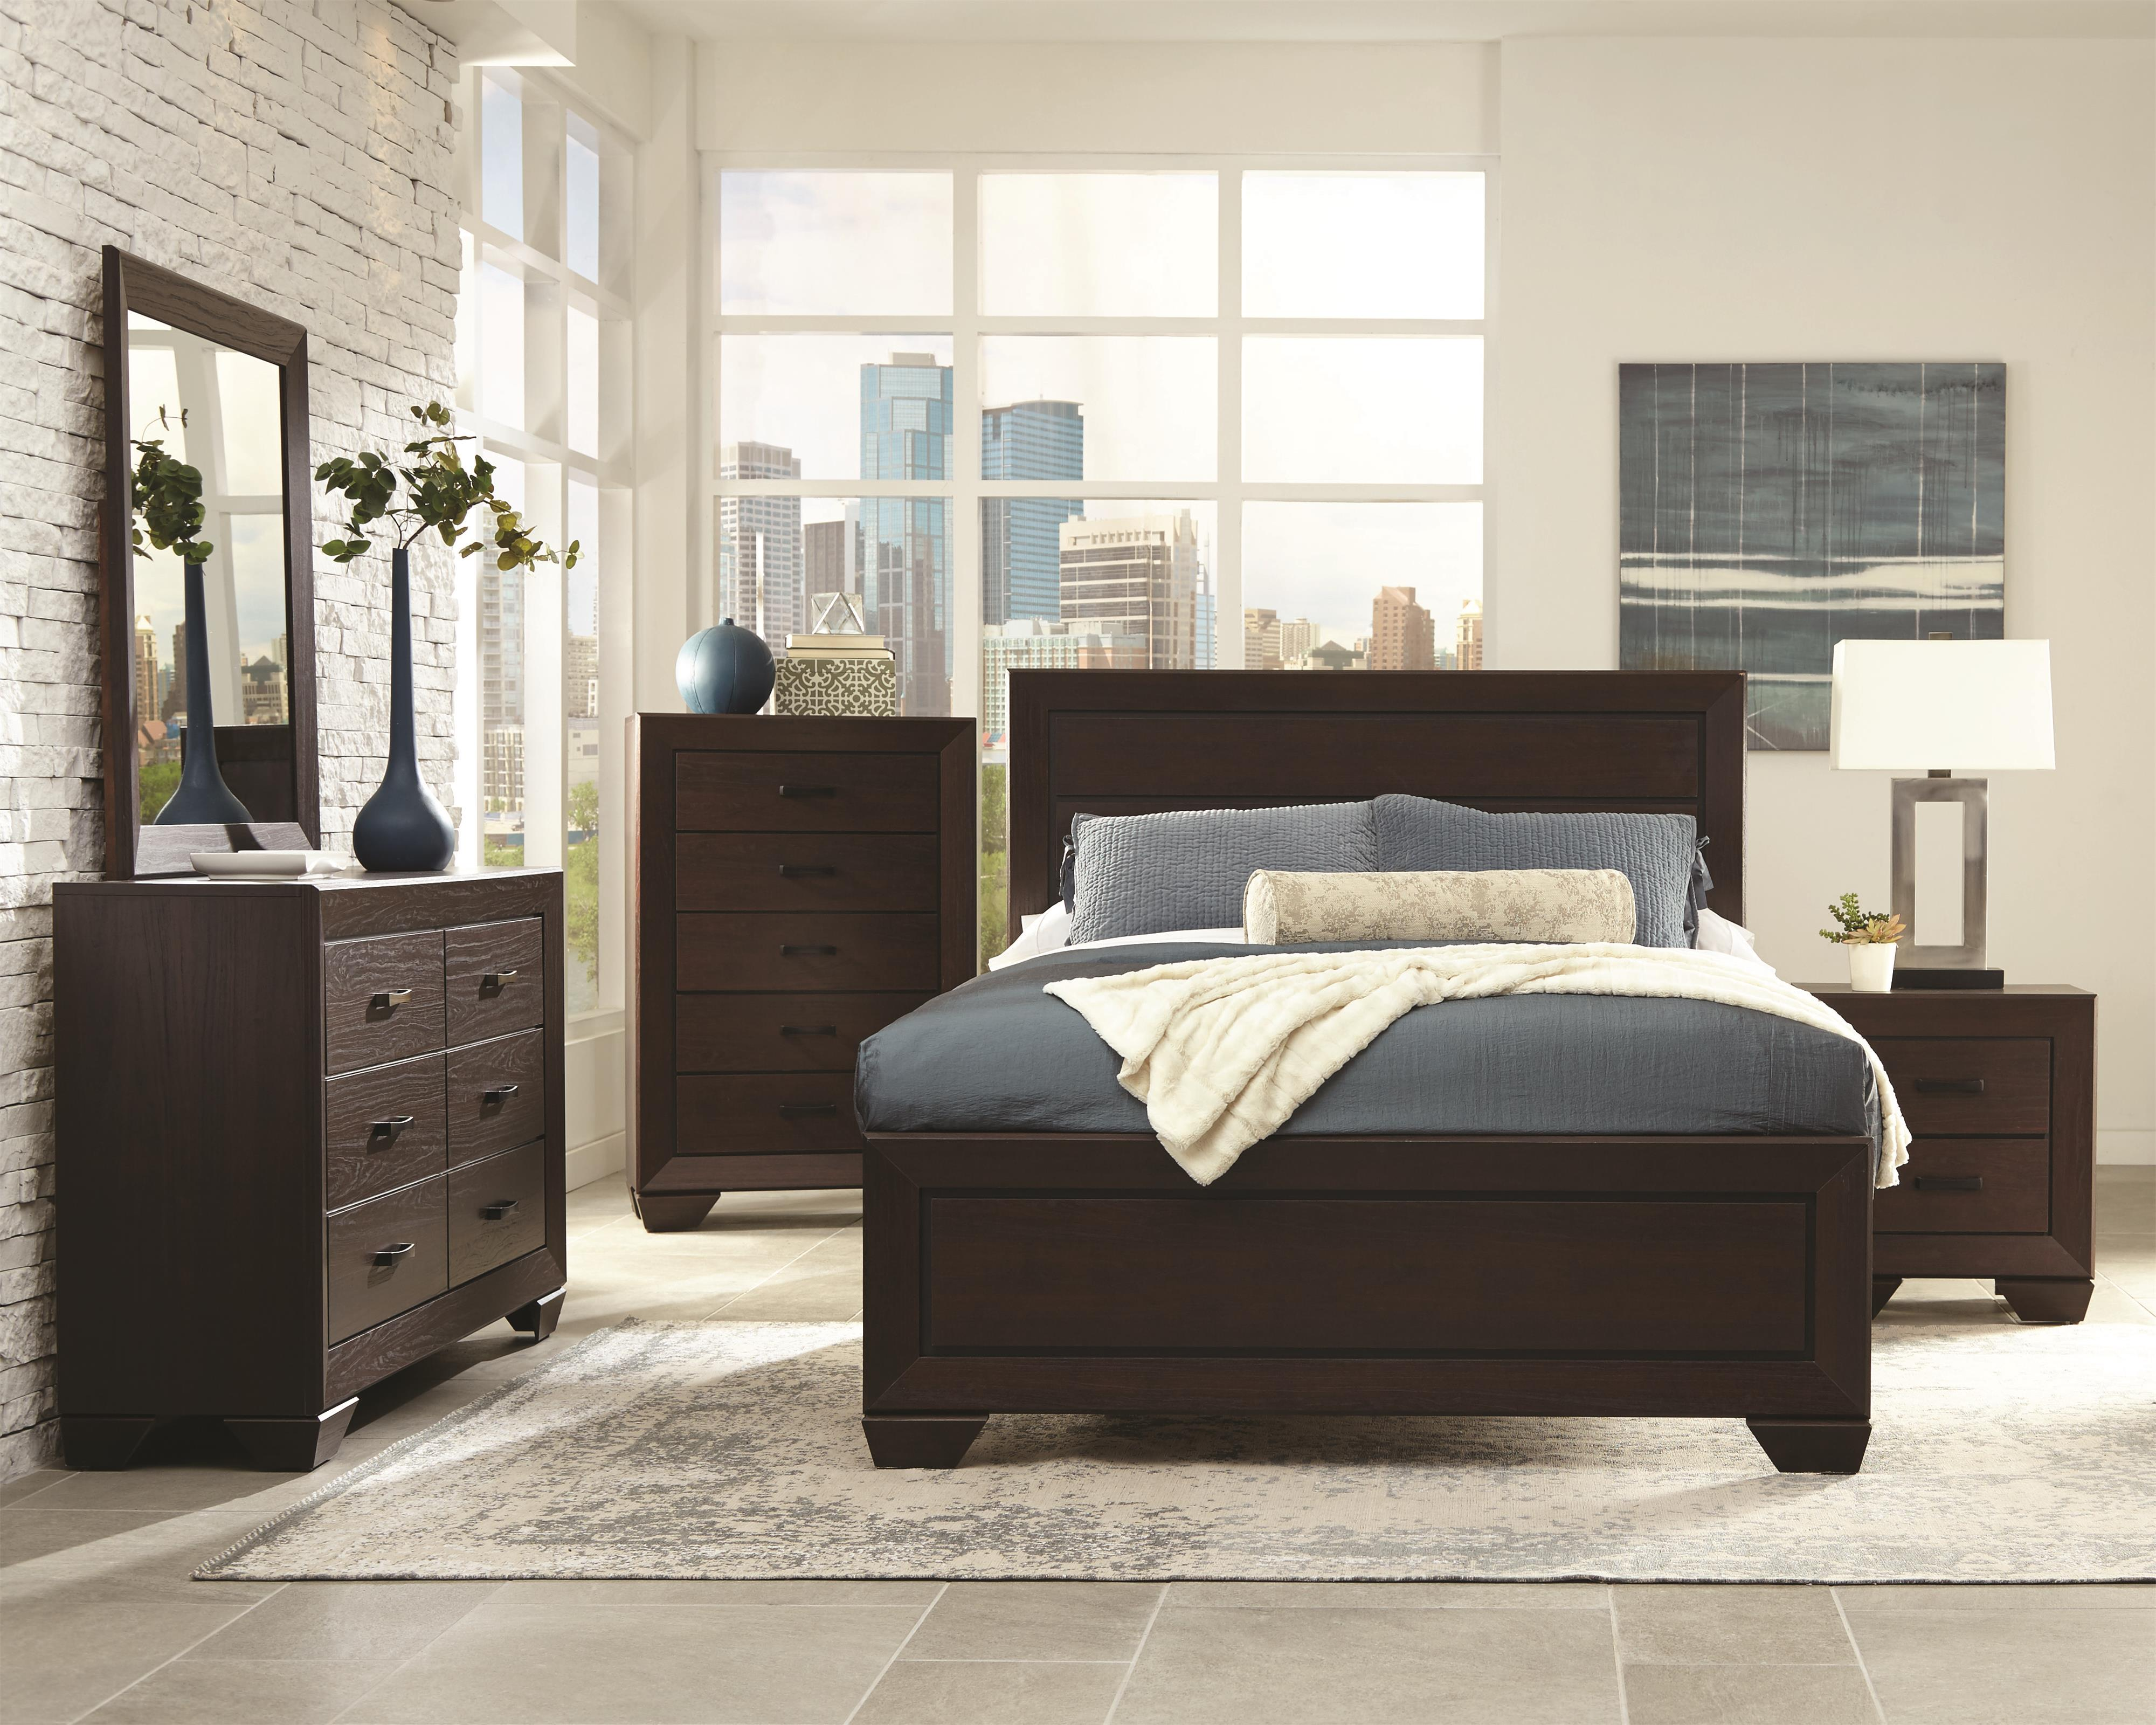 Fenbrook King Bedroom Group by Coaster at Northeast Factory Direct